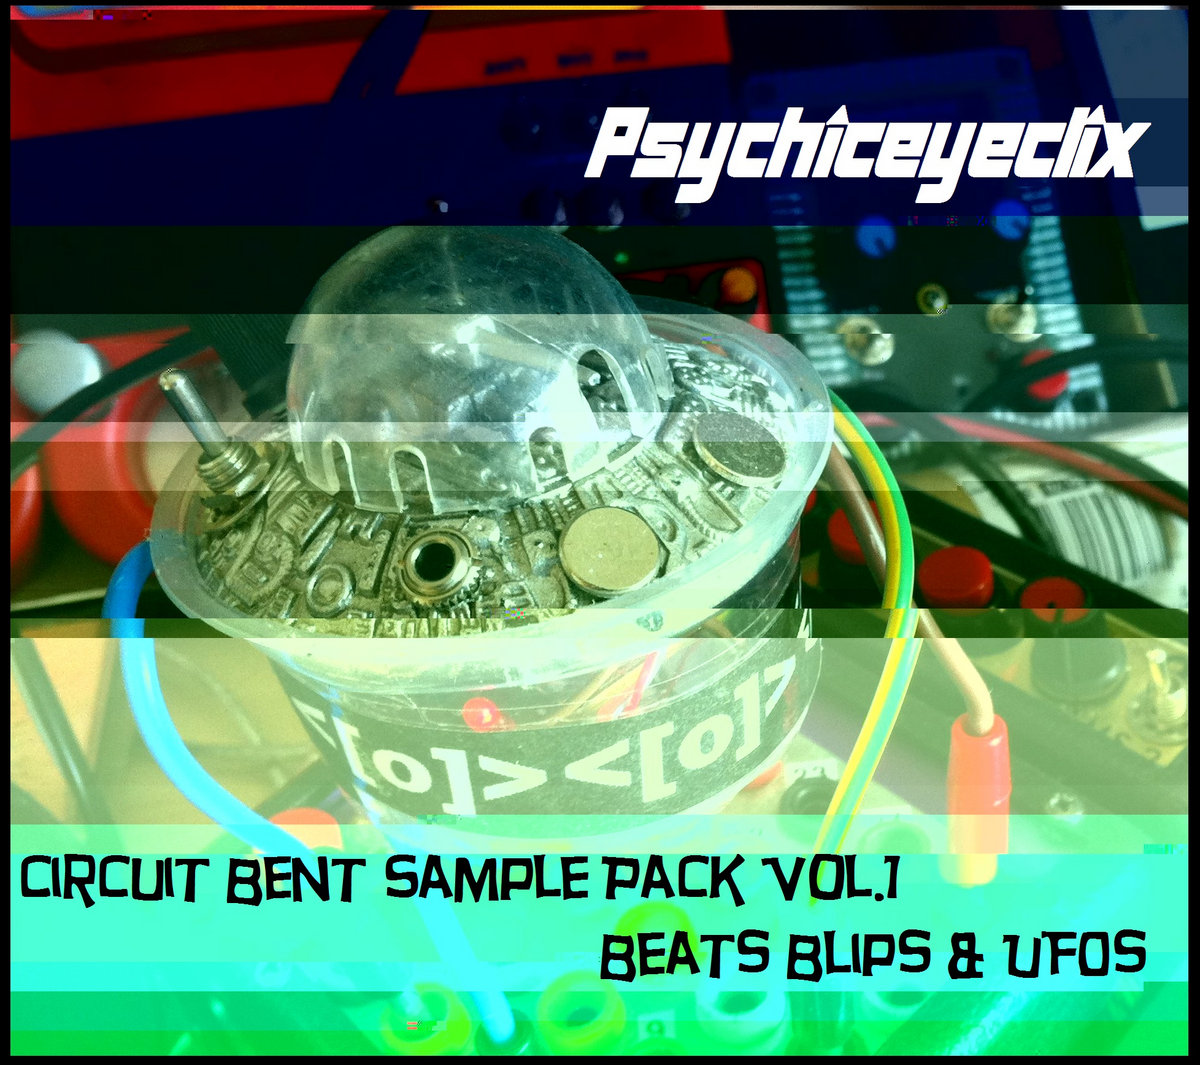 Casio Sk 1 Glitch Track Doubledgescissor Circuit Bending A Sk1 From Bent Sample Pack Vol Beats Blips Ufos By Psychiceyeclix